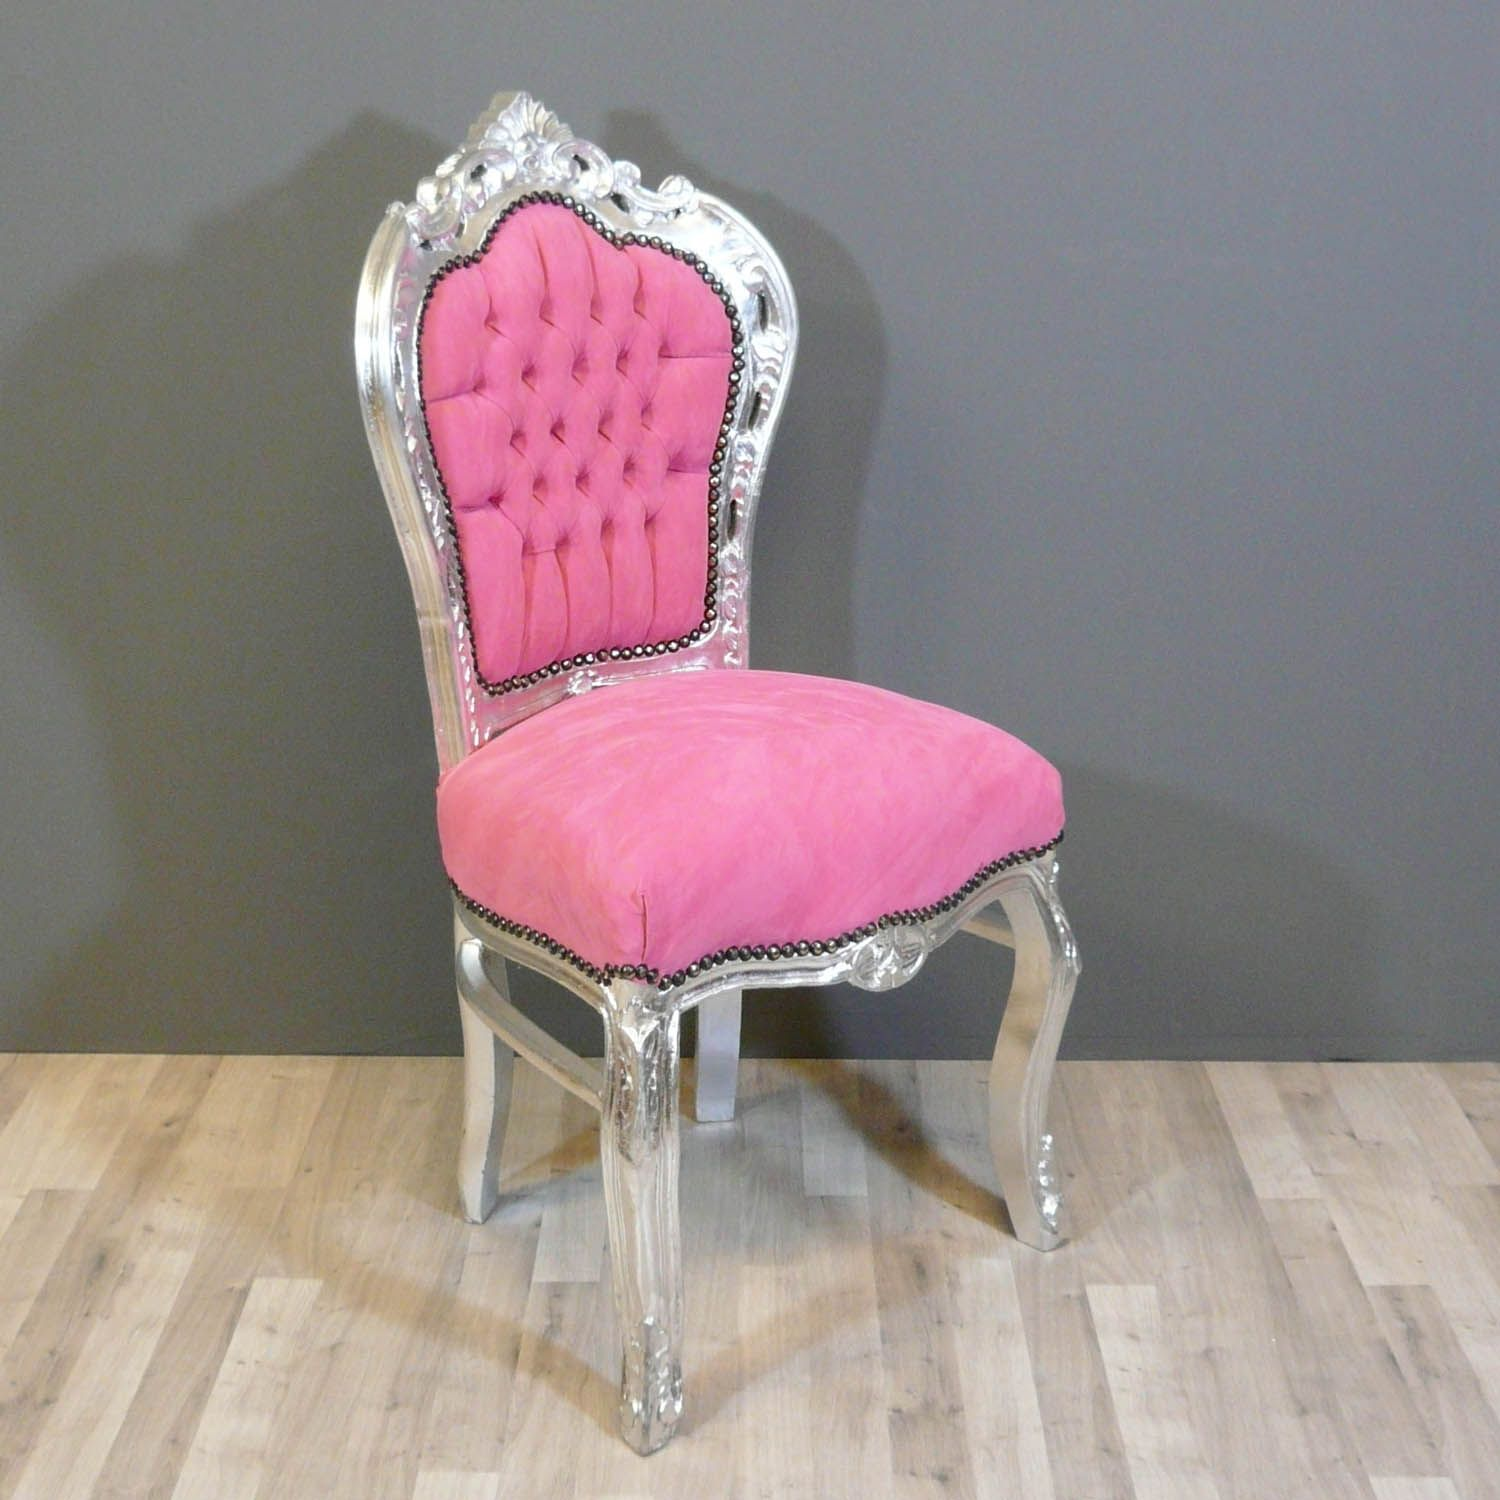 Chaises Baroque Chaise Baroque Rose Meubles Baroques Chaise Baroque Et